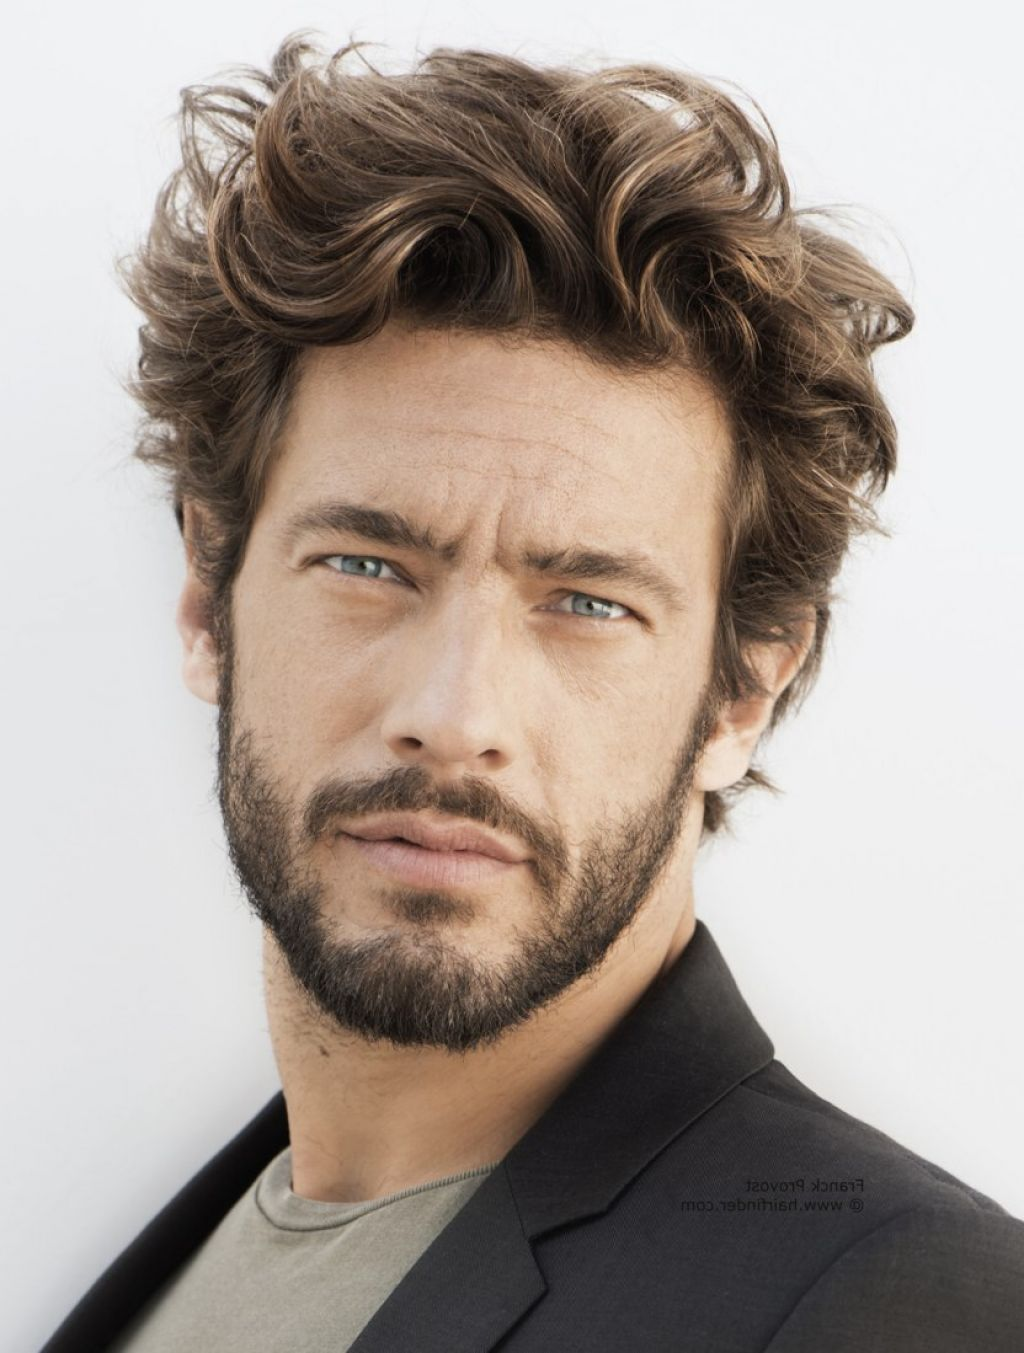 Beard Styles For Men with Curly Hair MEN'S HAIRSTYLES